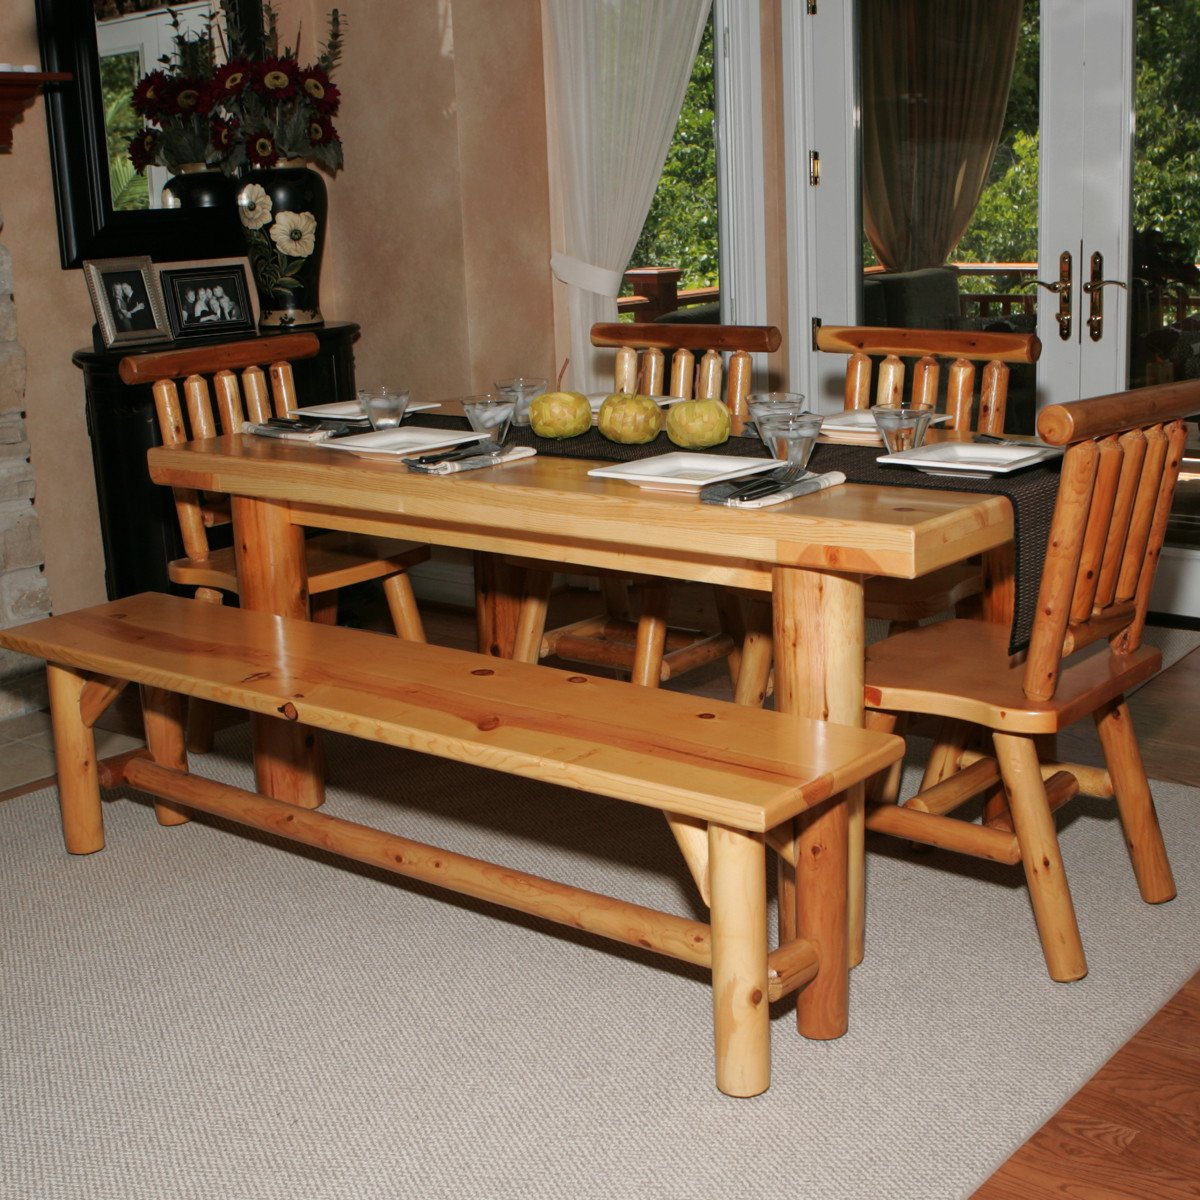 Square Table Seats 8: Square Dining Table Seats 8 Home Decor